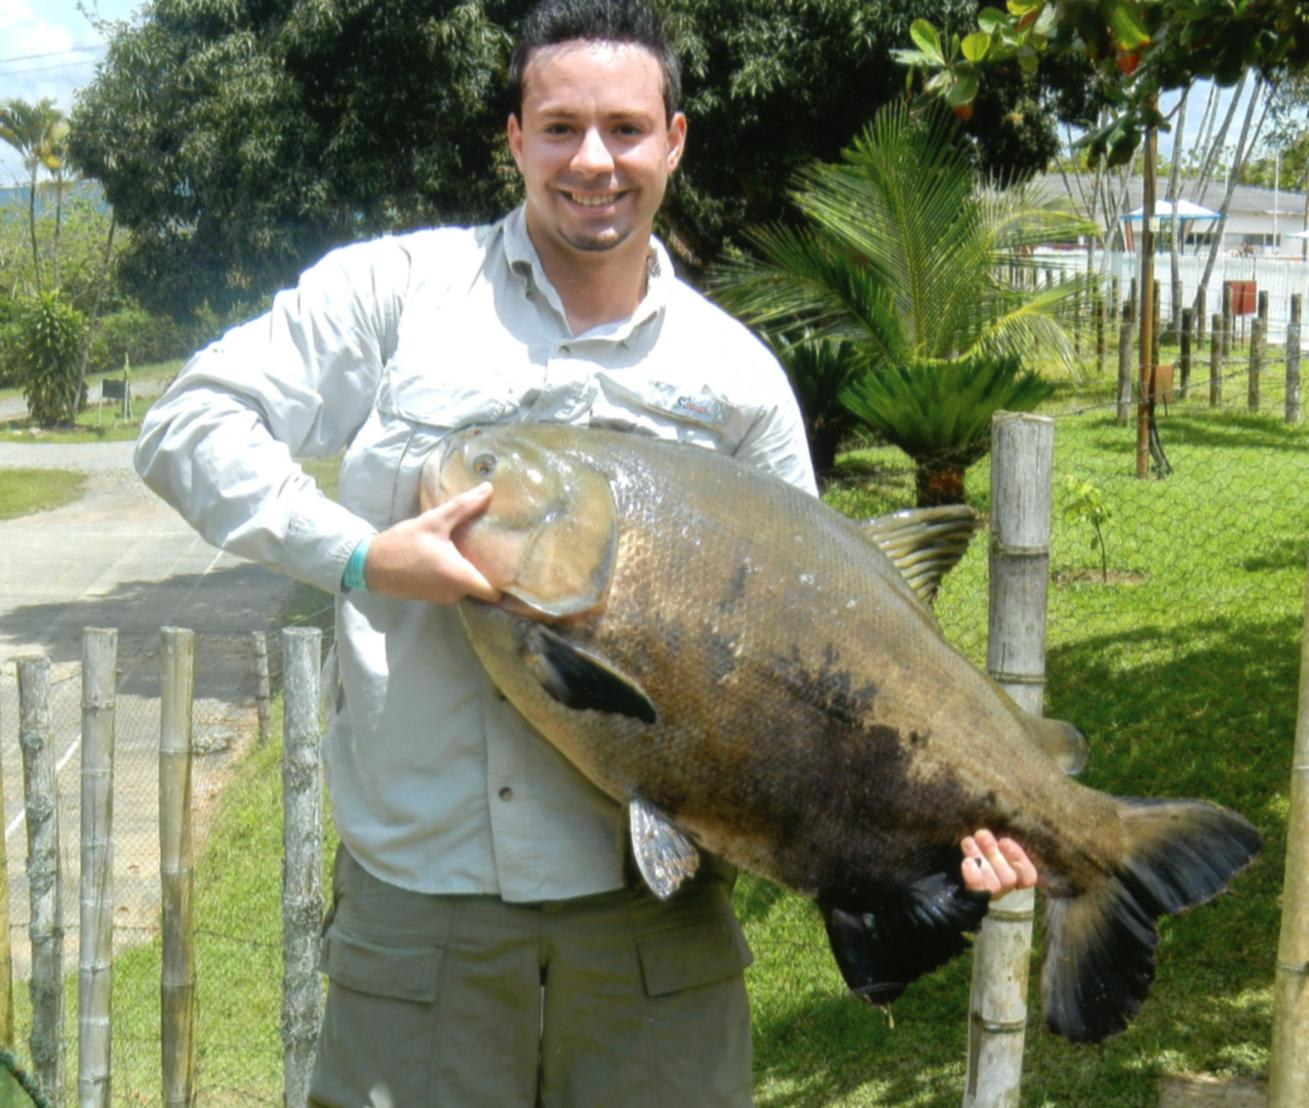 Freshwater fish in hawaii - Angler Raymond Heredia Orosco Of Highland Indiana Usa Recently Traveled To Colombia For A Change Of Scenery And To Do Some Freshwater Fishing